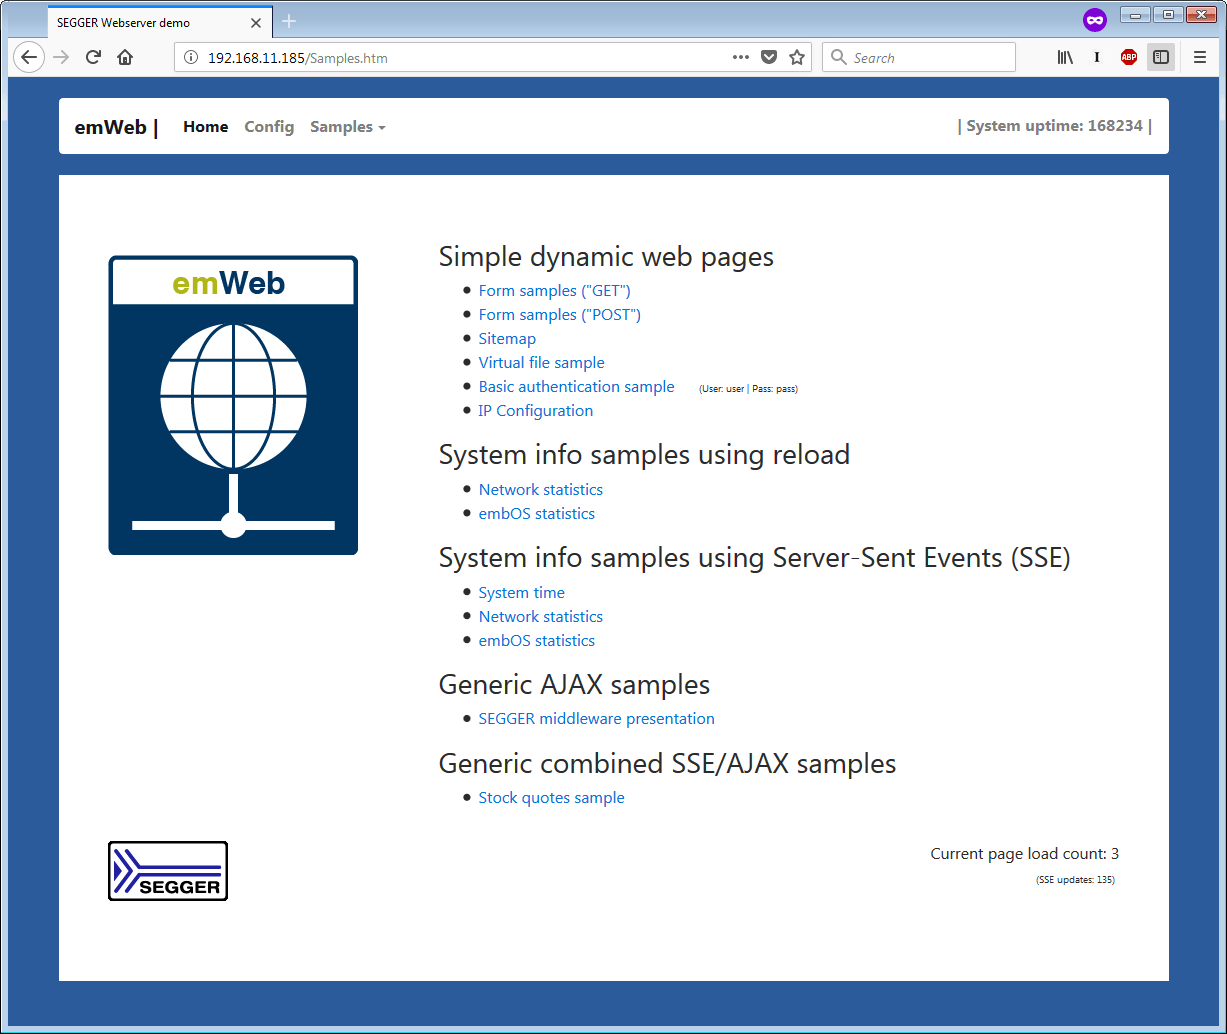 emWeb - The Embedded Web Server | SEGGER